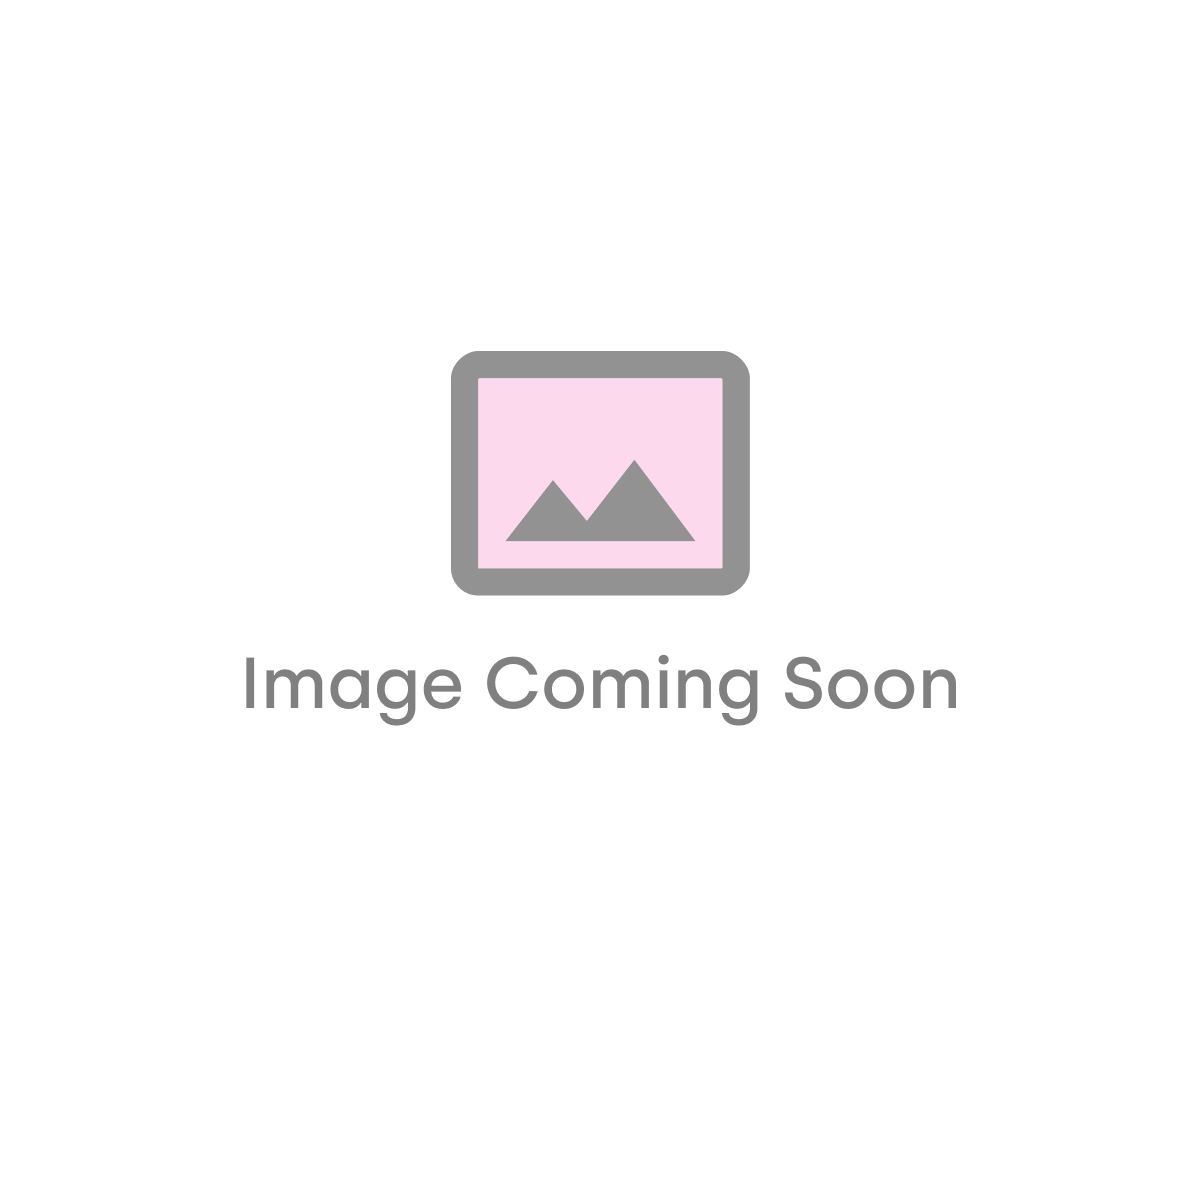 Elettra 1.0 Reversible Sink Bowl & Concetto Tap - 7728